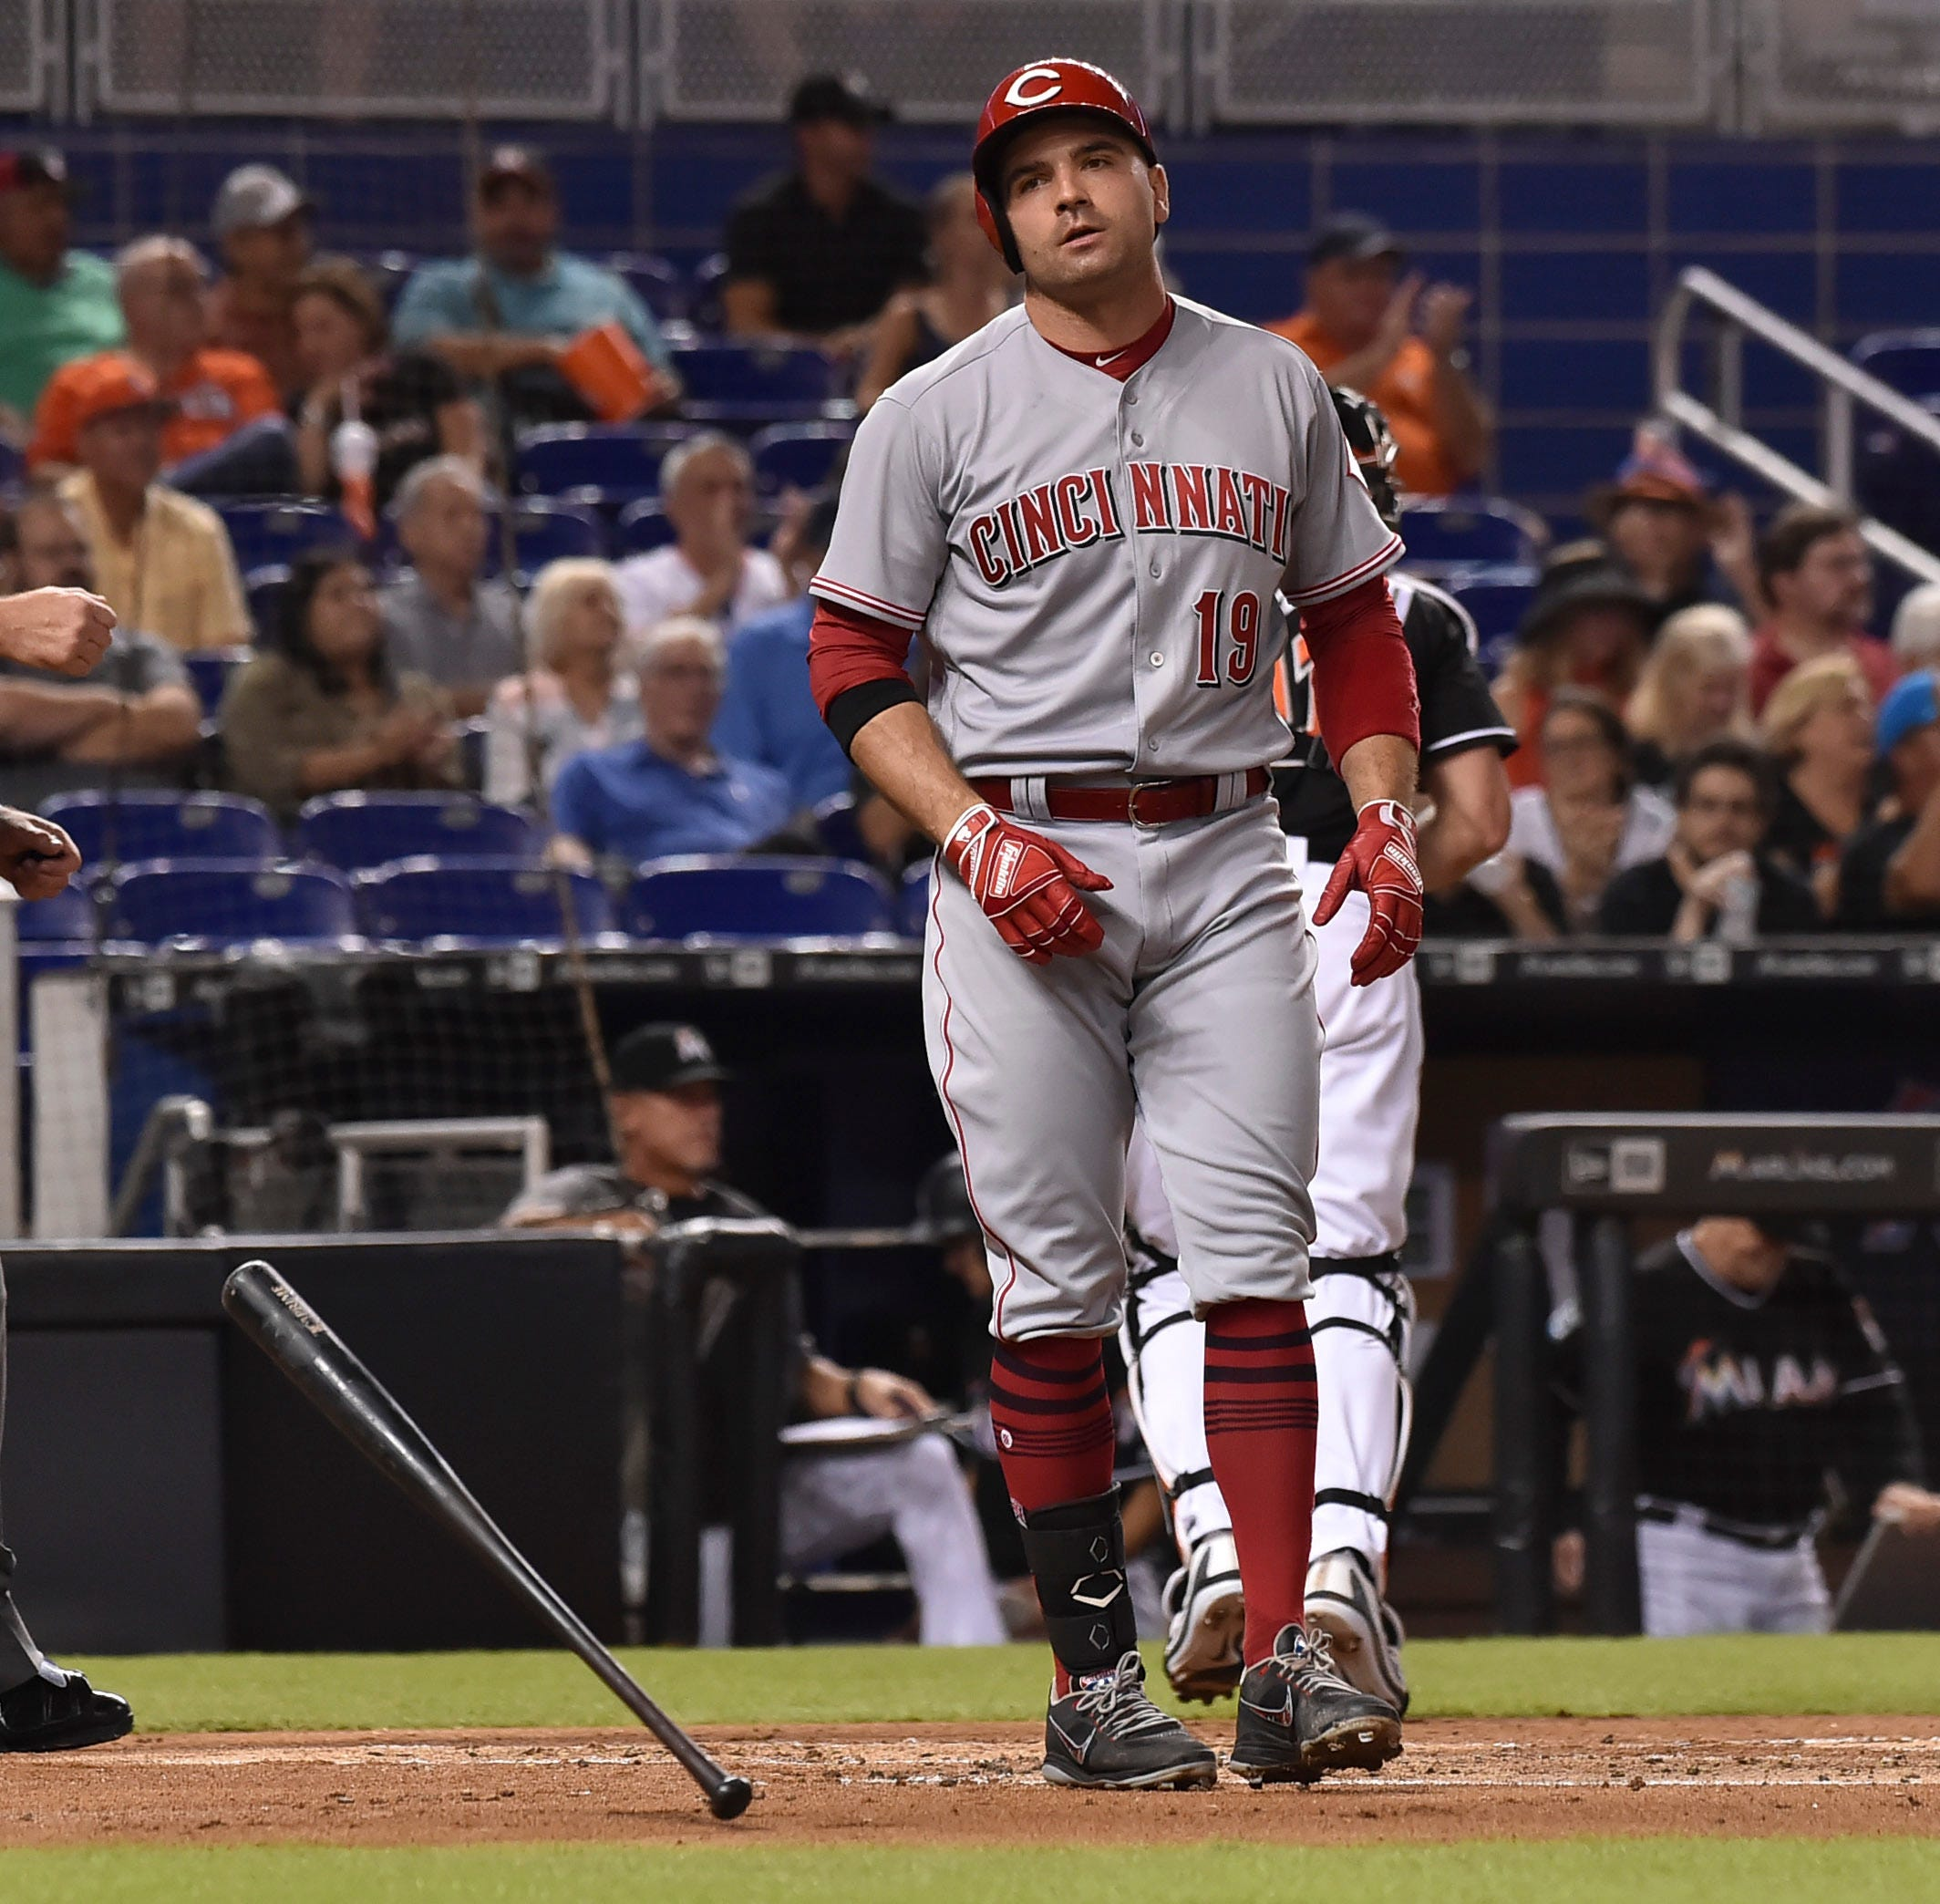 Cincinnati Reds lineup continues slump in 5-1 loss to Miami Marlins